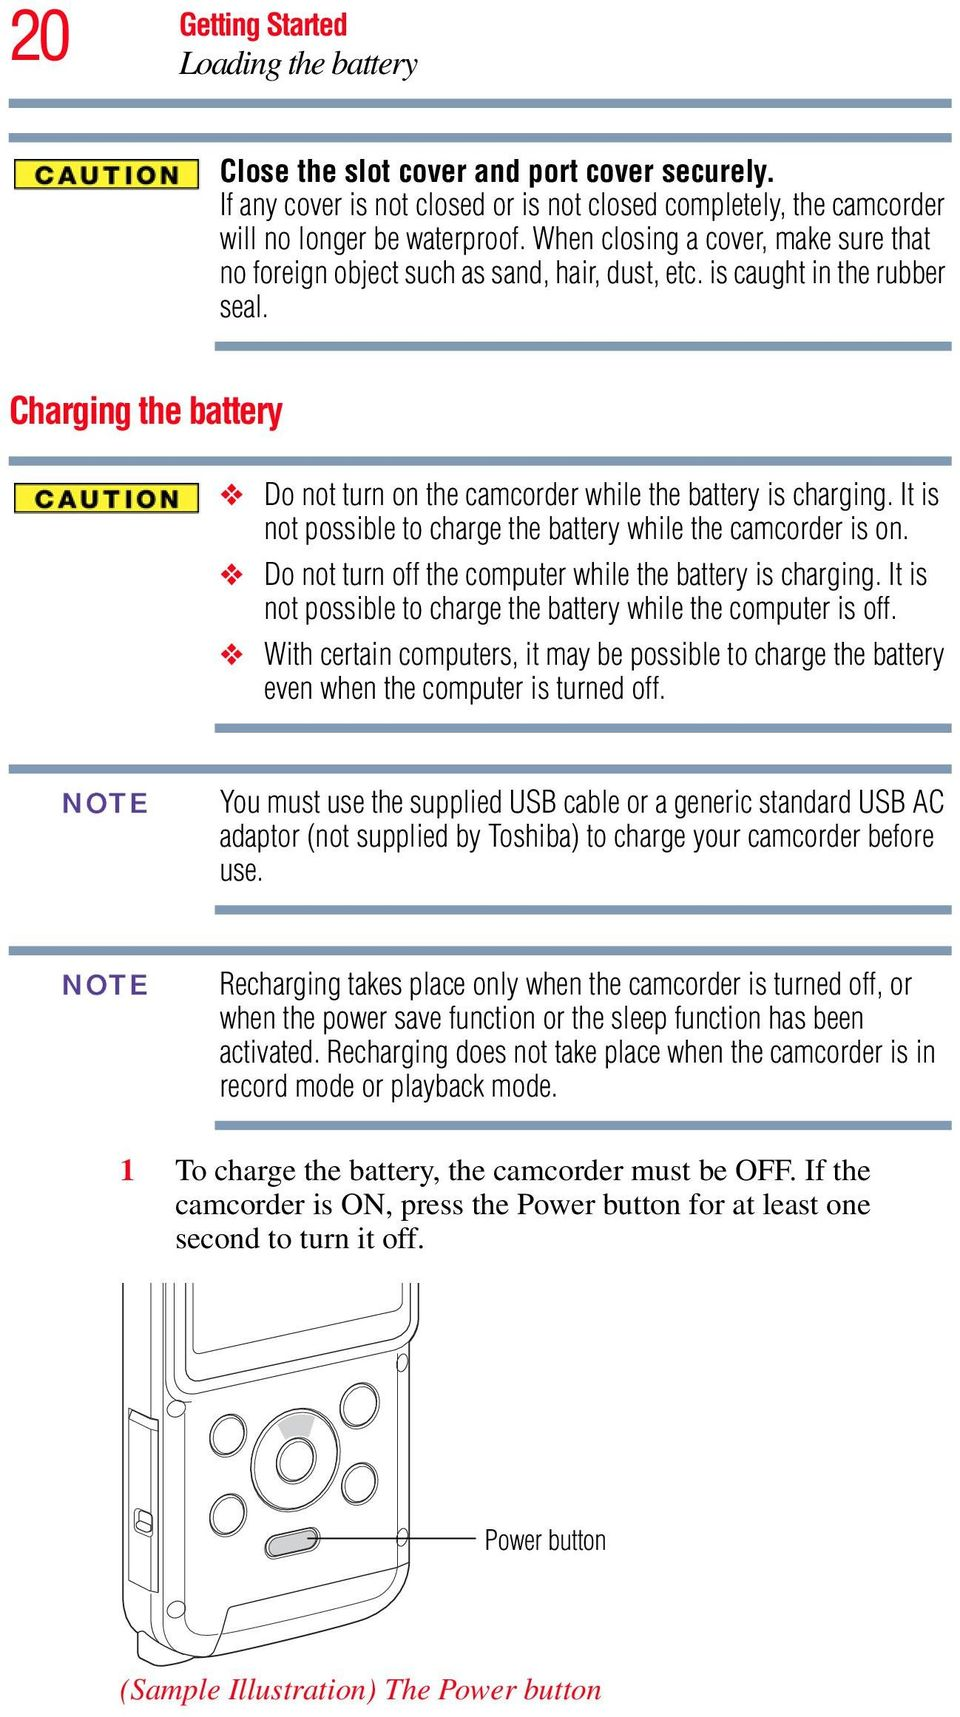 It is not possible to charge the battery while the camcorder is on. Do not turn off the computer while the battery is charging. It is not possible to charge the battery while the computer is off.